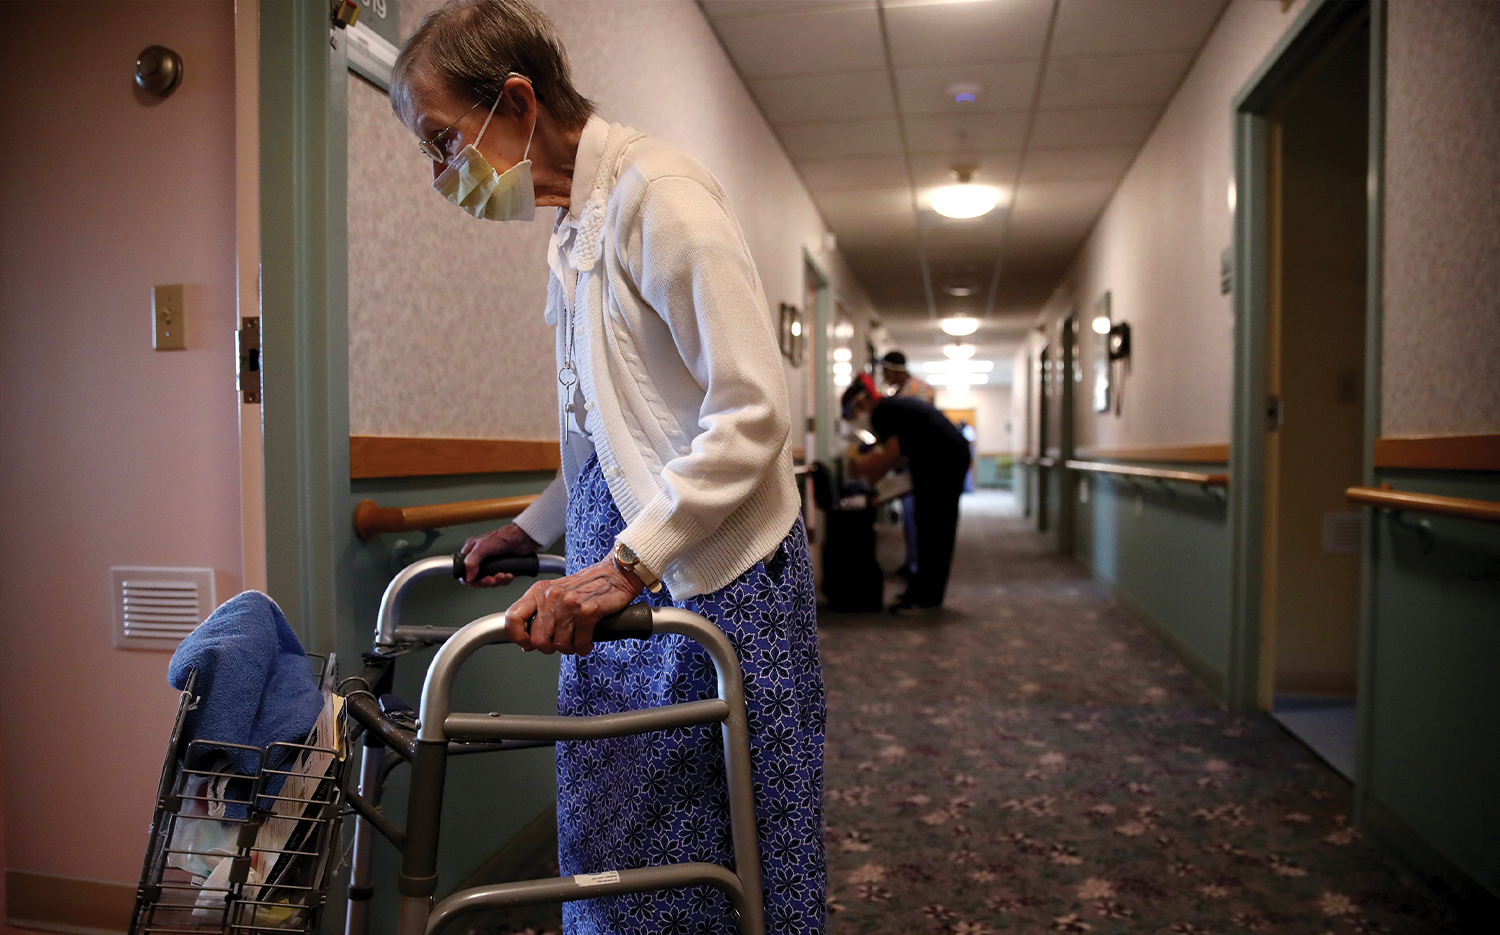 Jeanne Arsenault returns to her room after breakfast at St. Chretienne Retirement Residence in Marlborough, Maine.